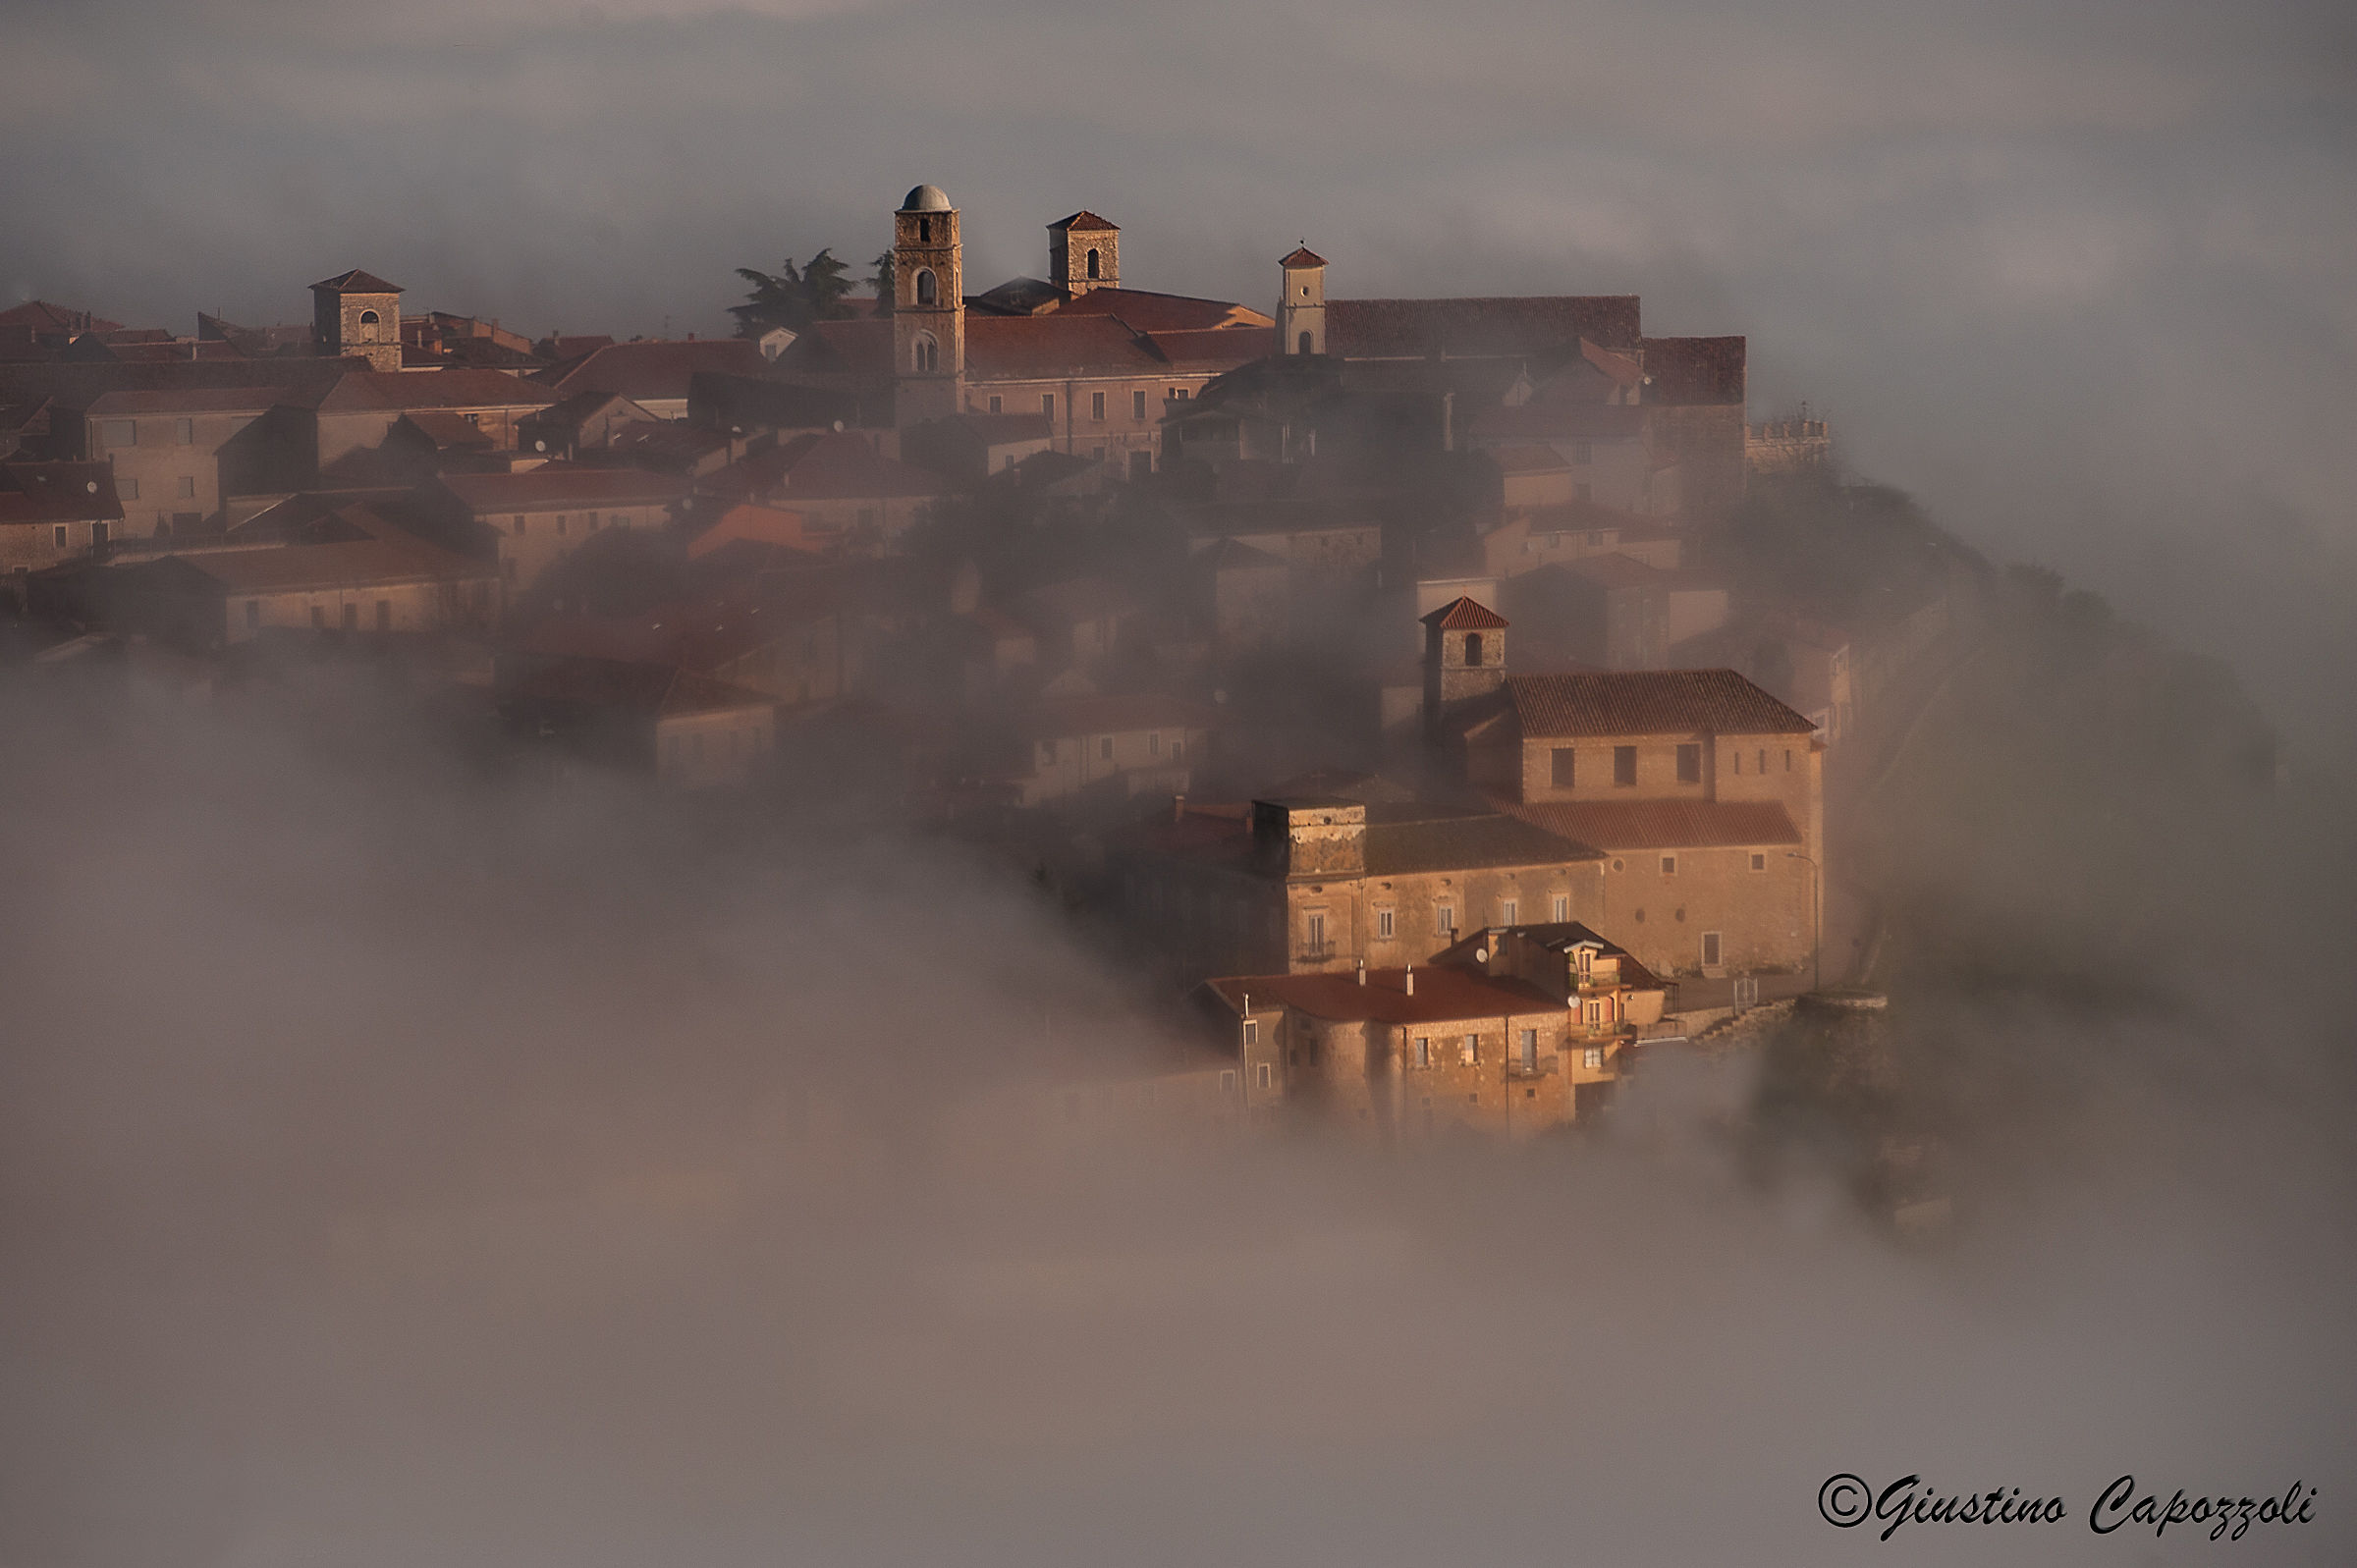 Teggiano bell in the fog....